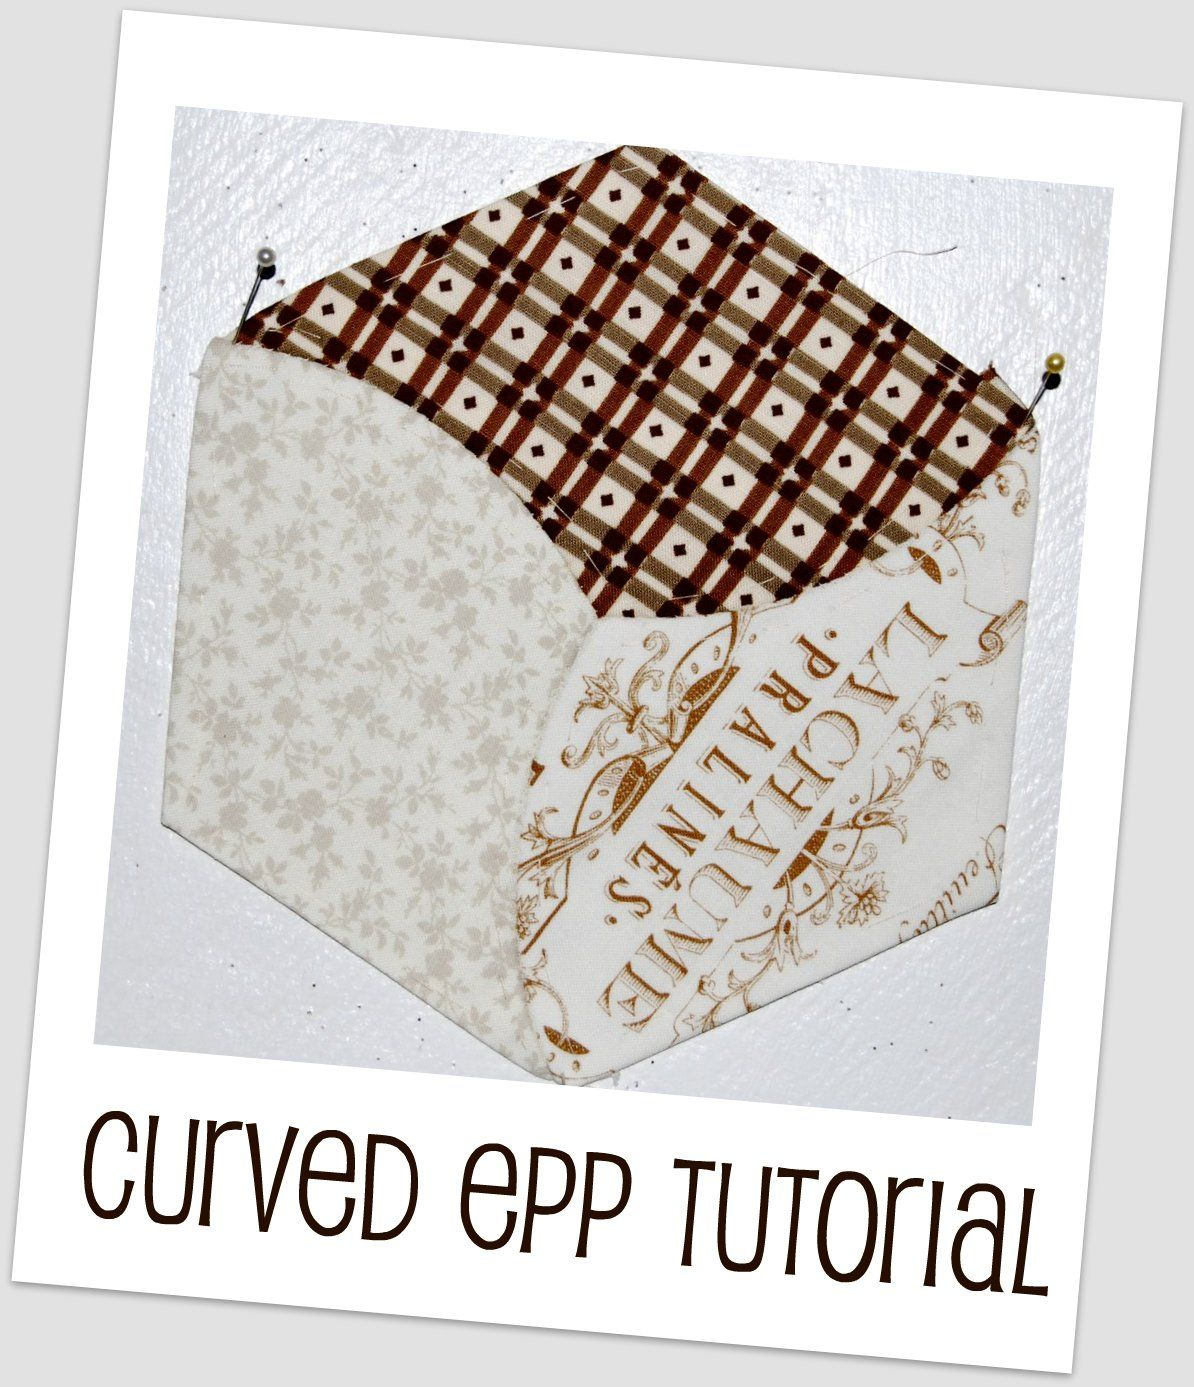 Awesome tutorial on pattern drafting old-school from Lillys Quilts.  I want to try this!